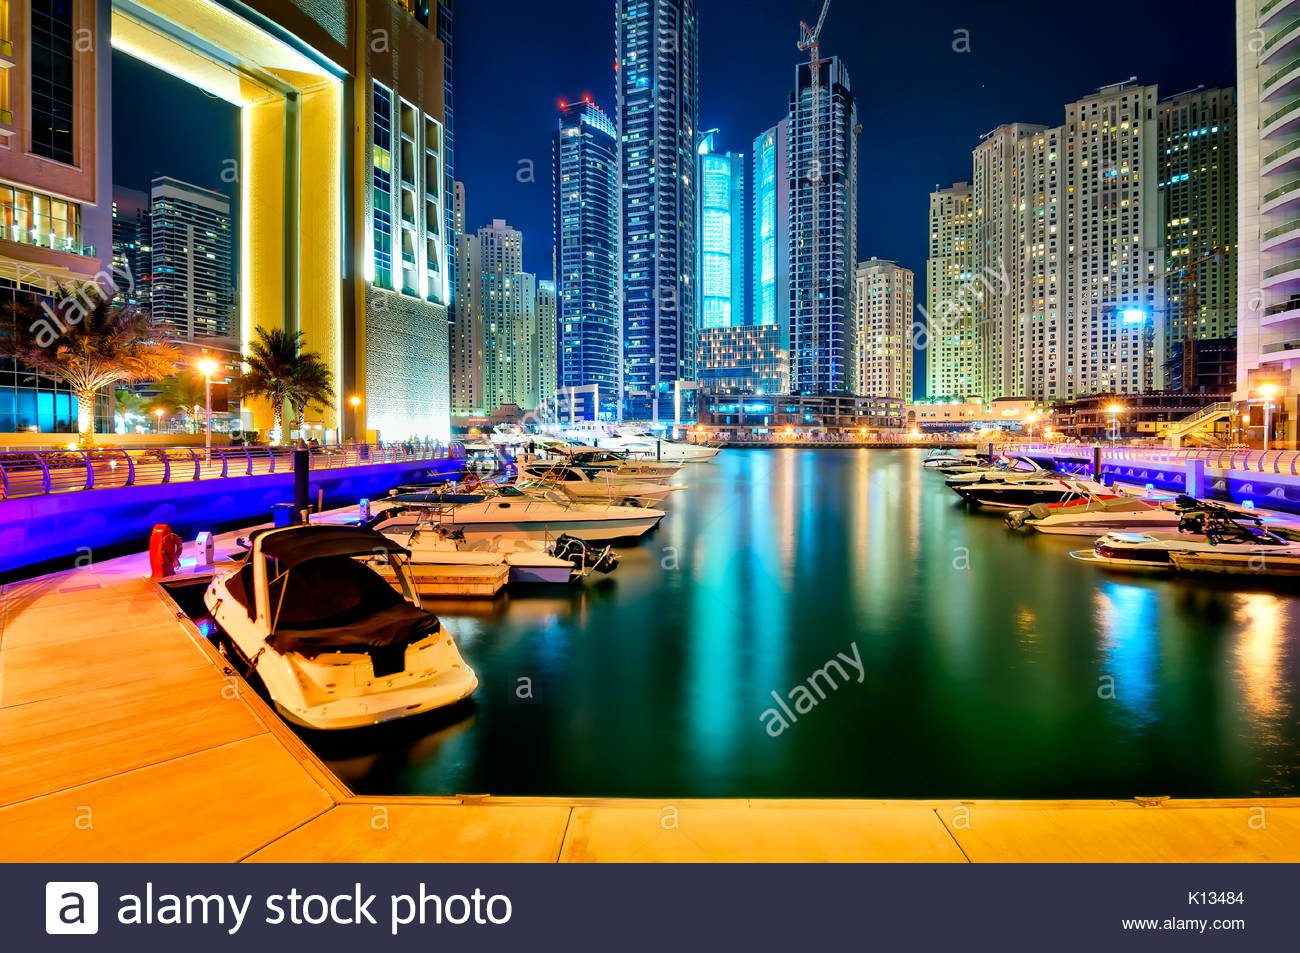 DUBAI, UAE - MARCH 22, 2014: Colorful night dubai marina, Dubai United Arab Emirates - Stock Image